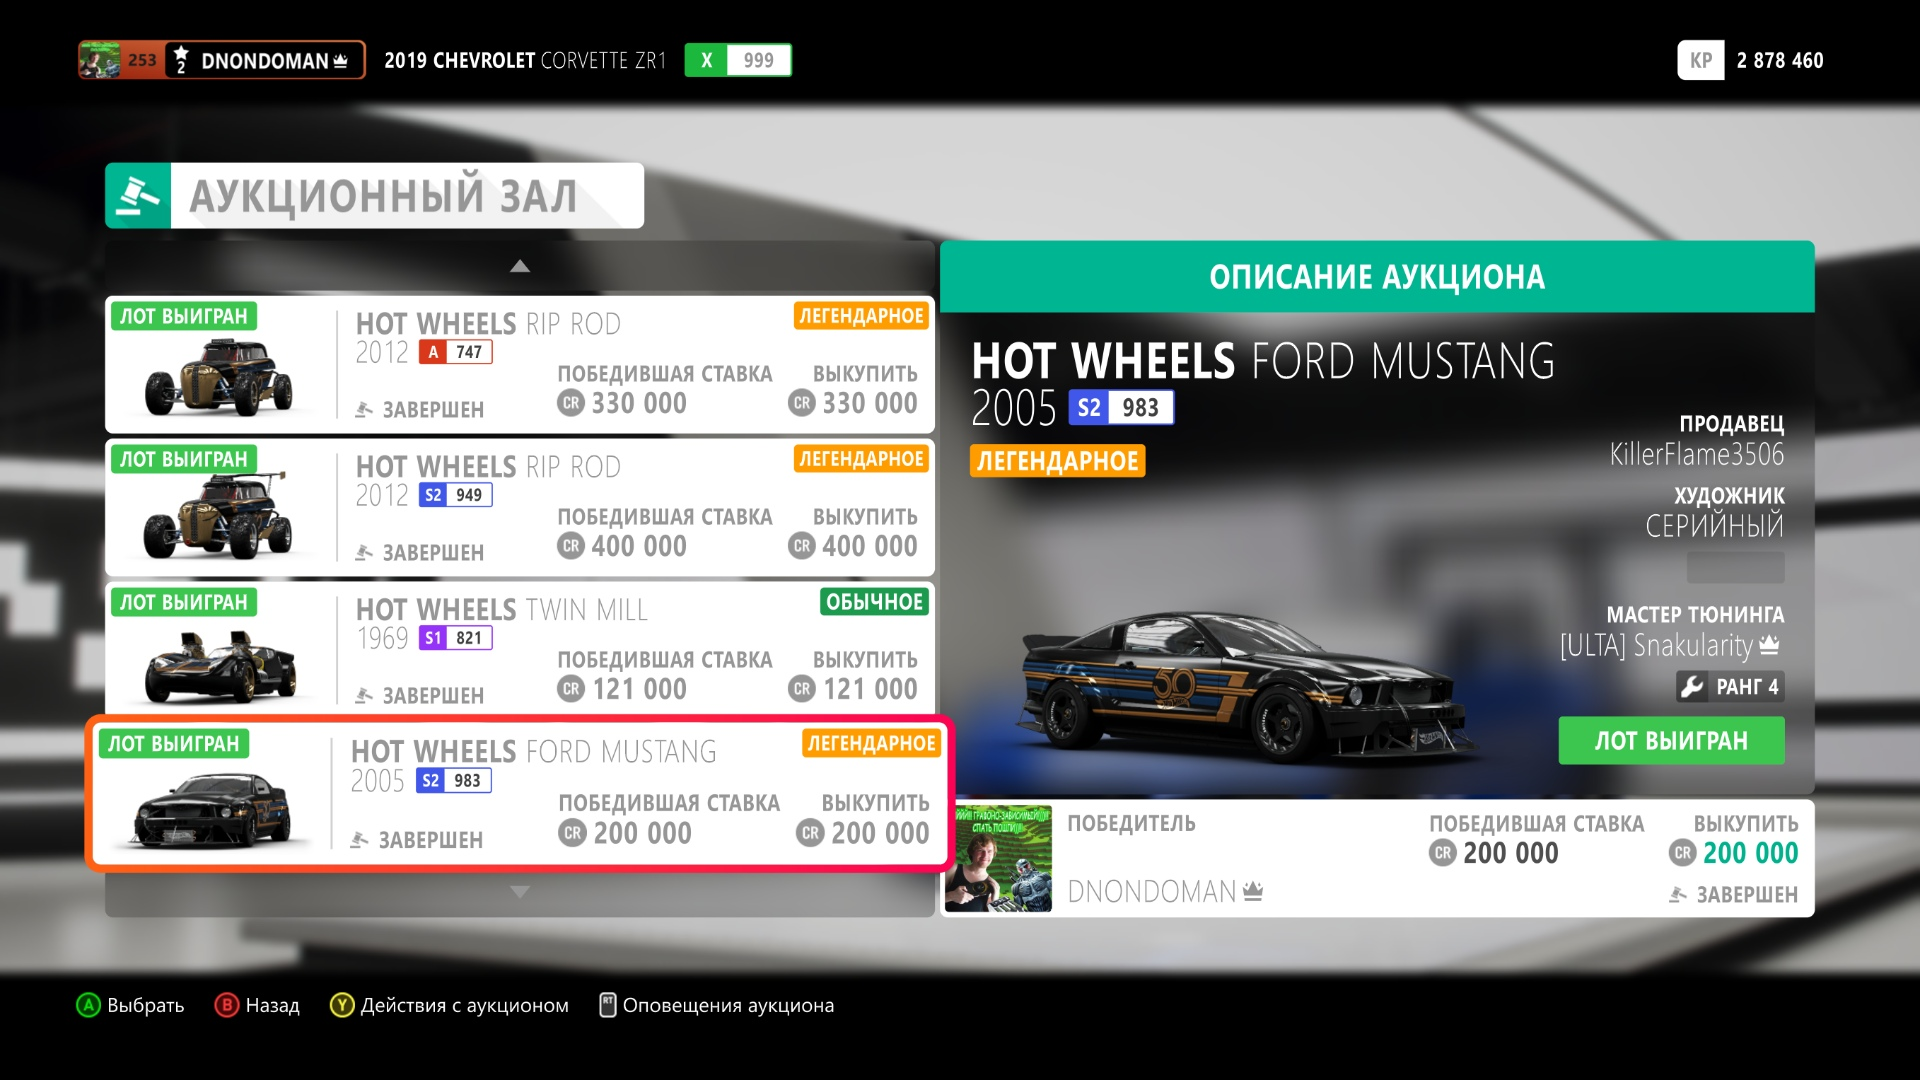 Hotwheels Mustang-Aquired early - Forza Horizon 4 Discussion - Forza